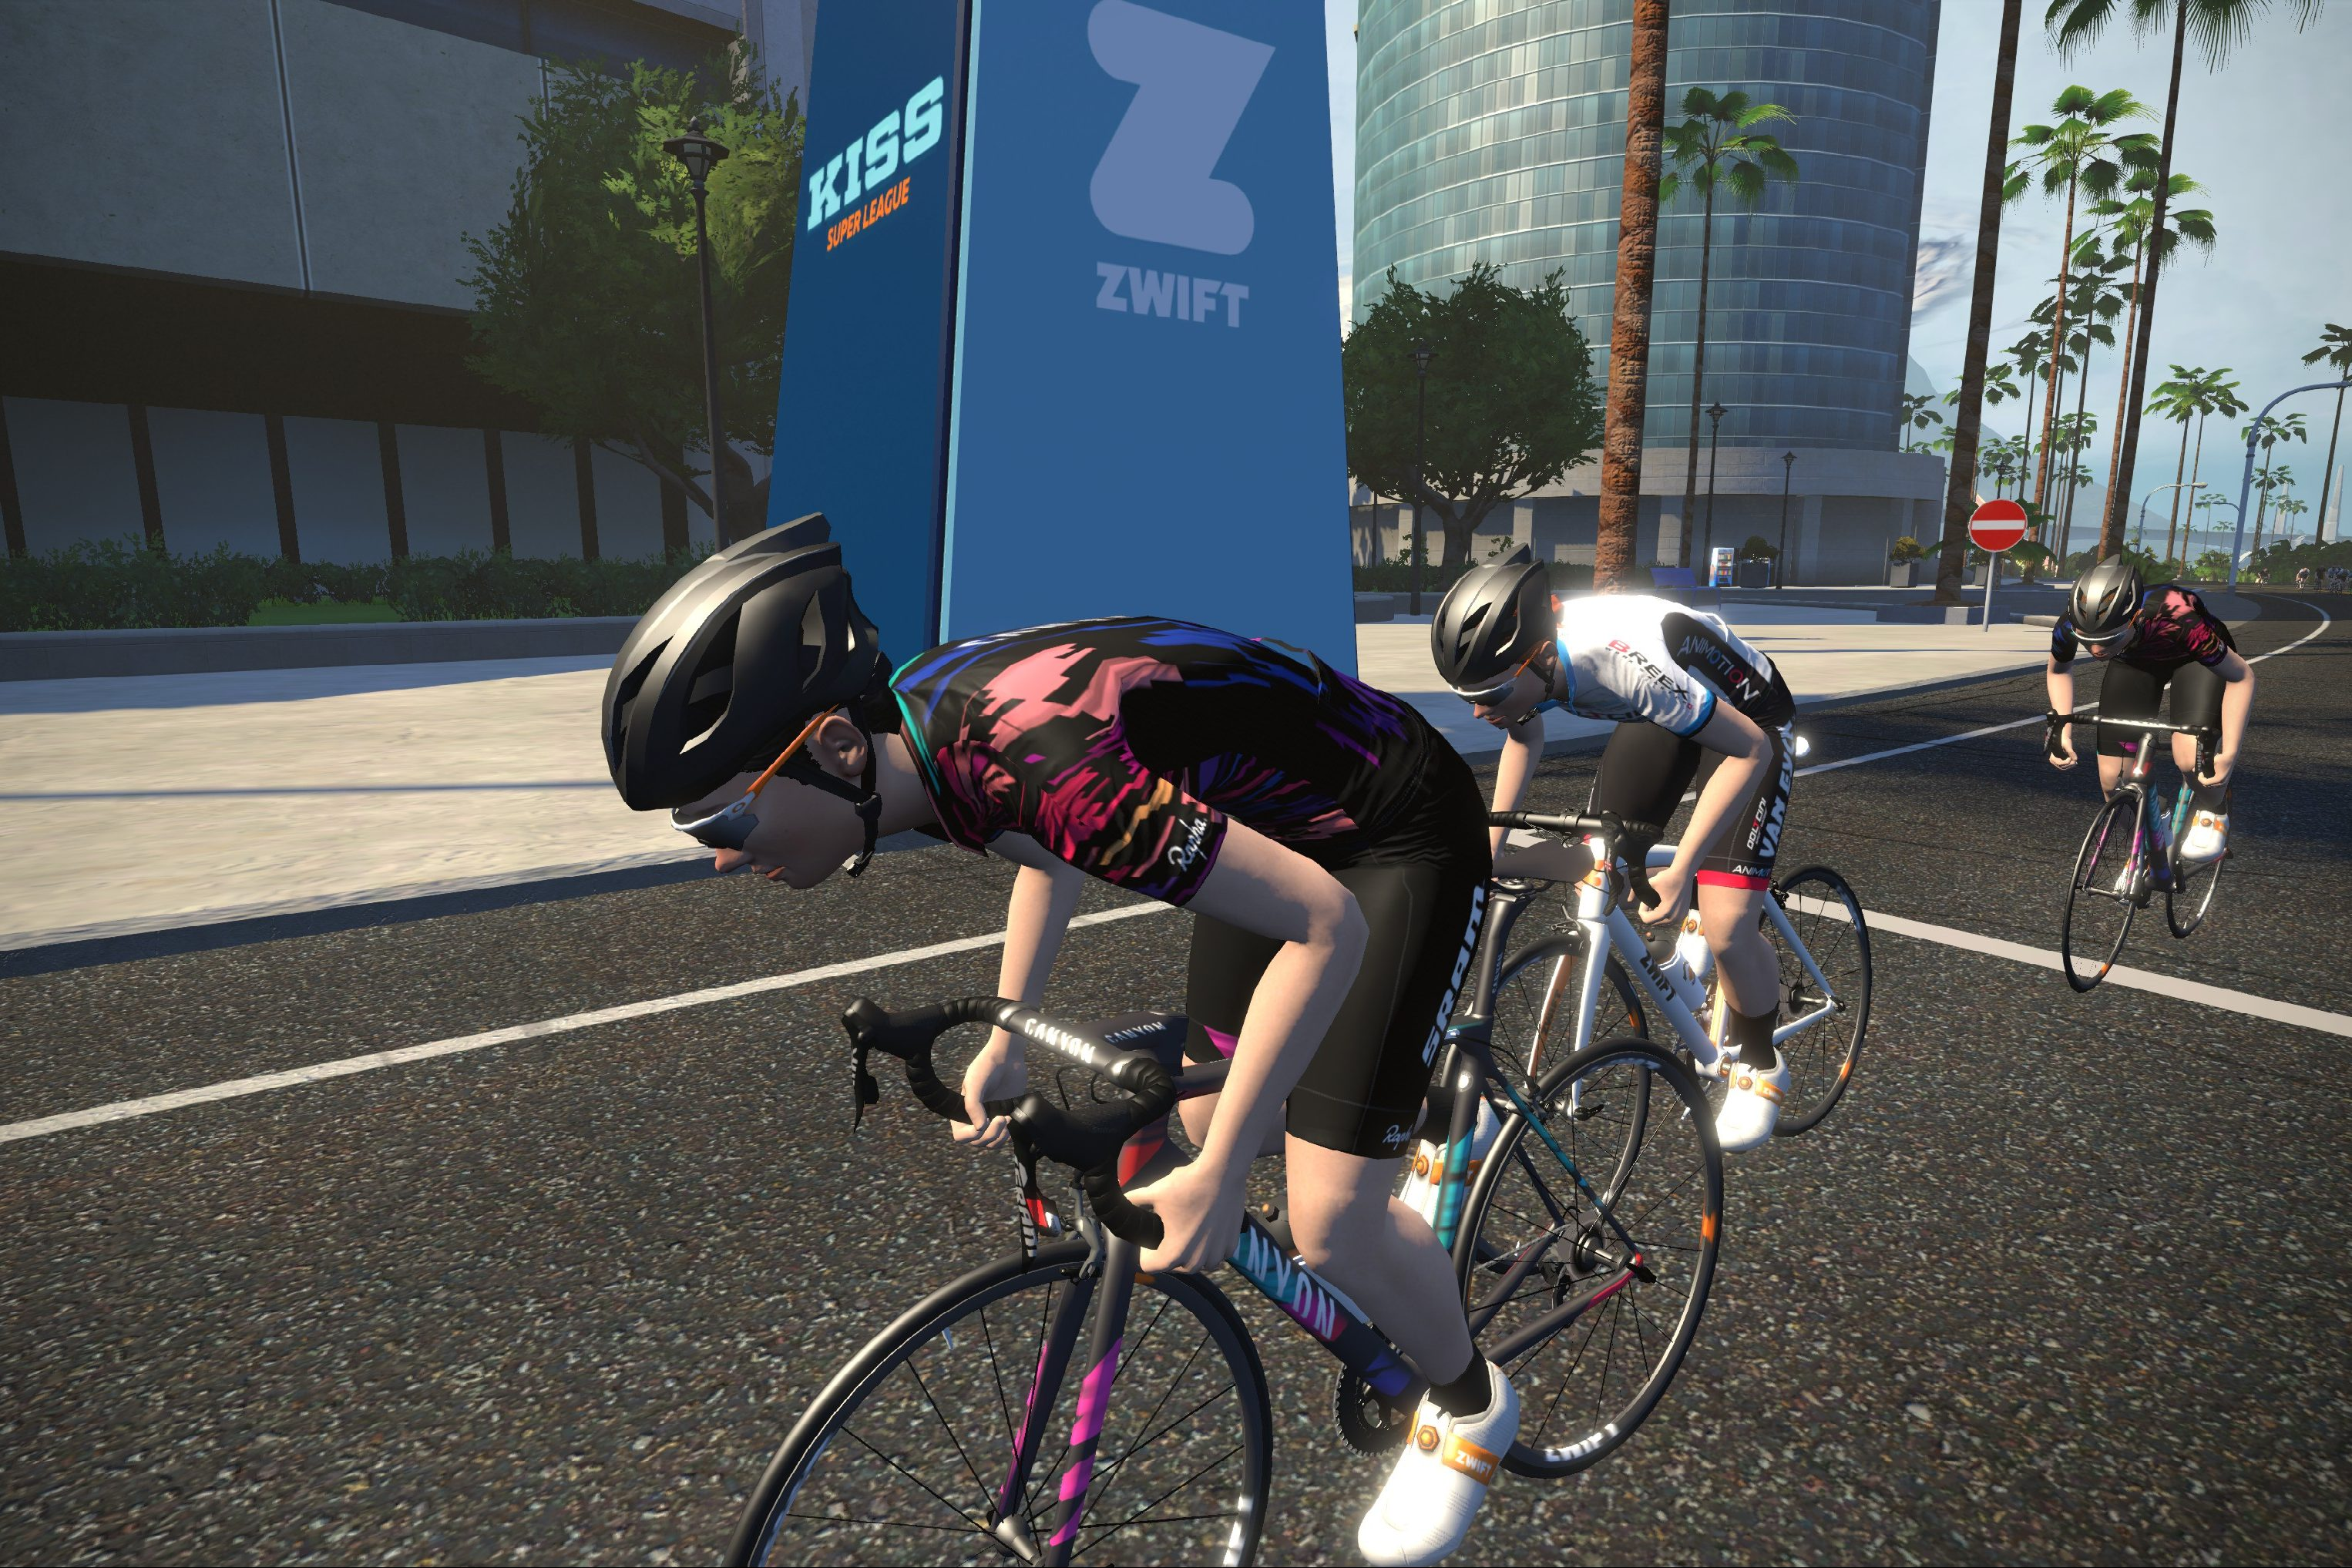 Zwift 'Drop Shop' lets users customise avatars and grow bike